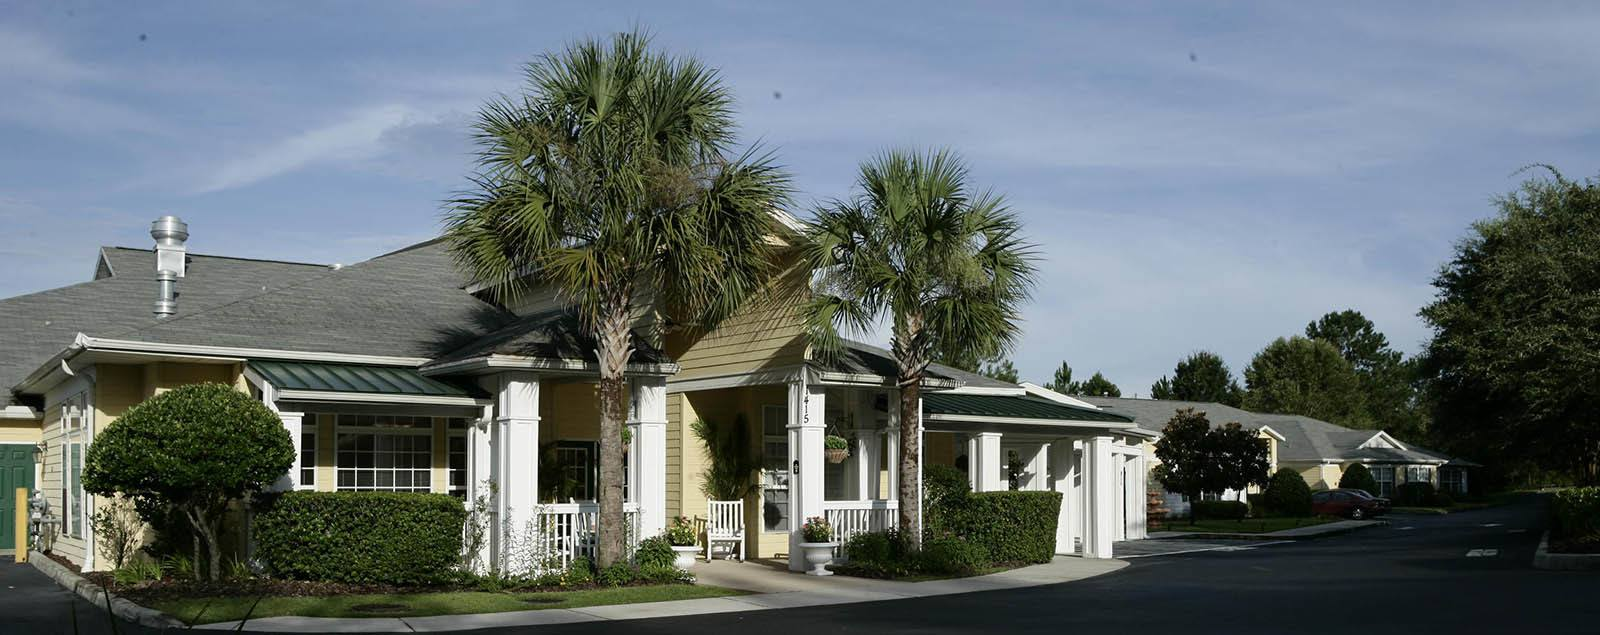 Photo gallery of Senior Living in Gainesville